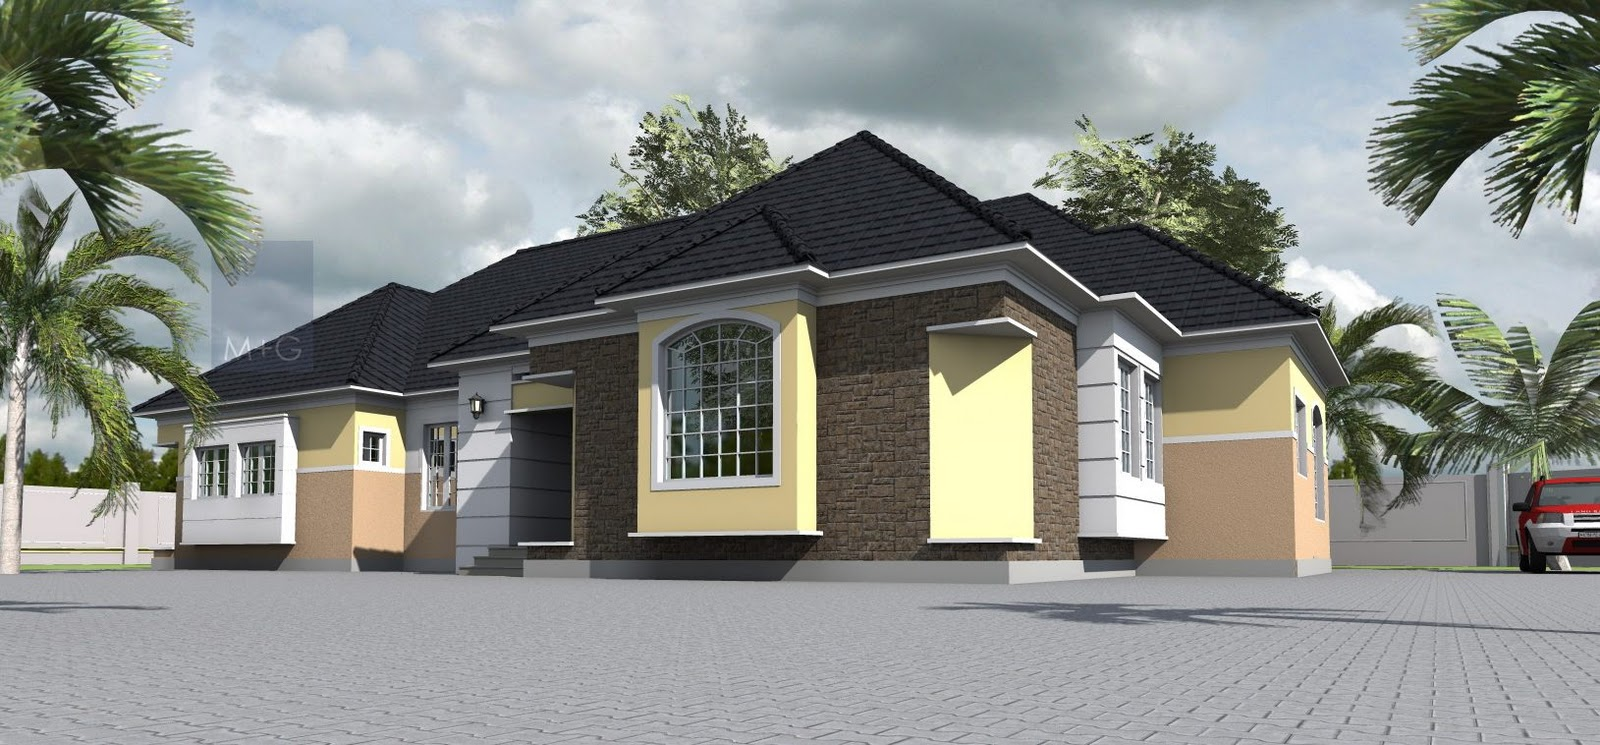 6 bedroom bungalow house plans in nigeria modern house for Residential architect